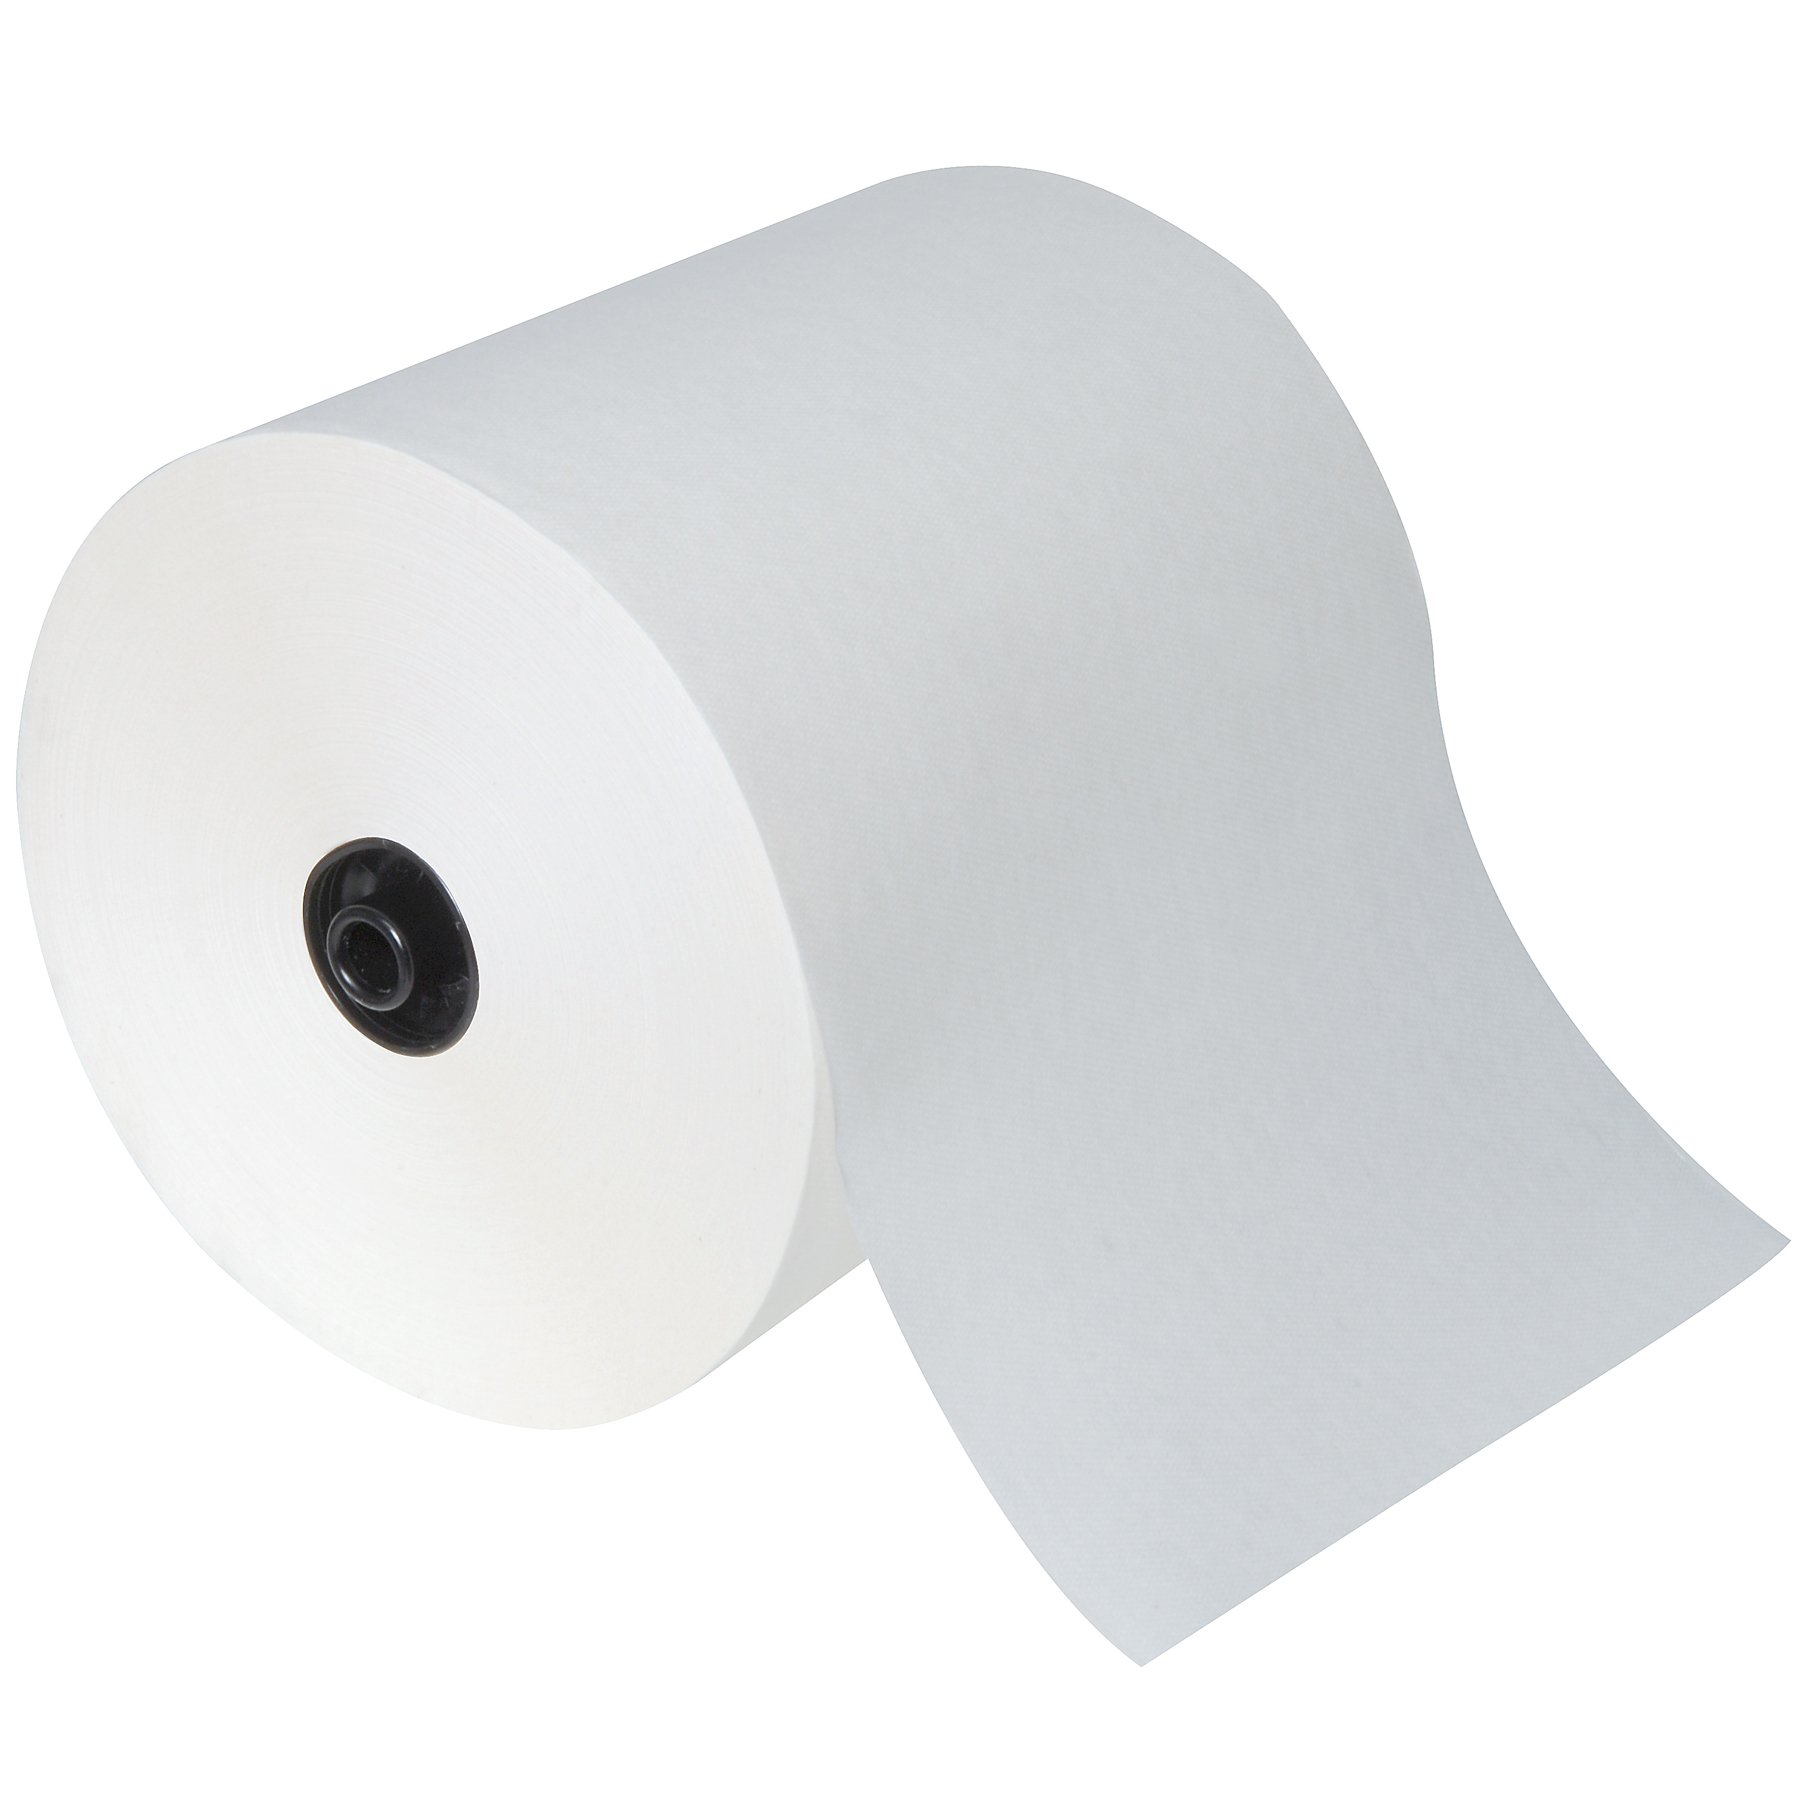 "enMotion 8"" Paper Towel Roll by GP PRO (Georgia-Pacific), White"